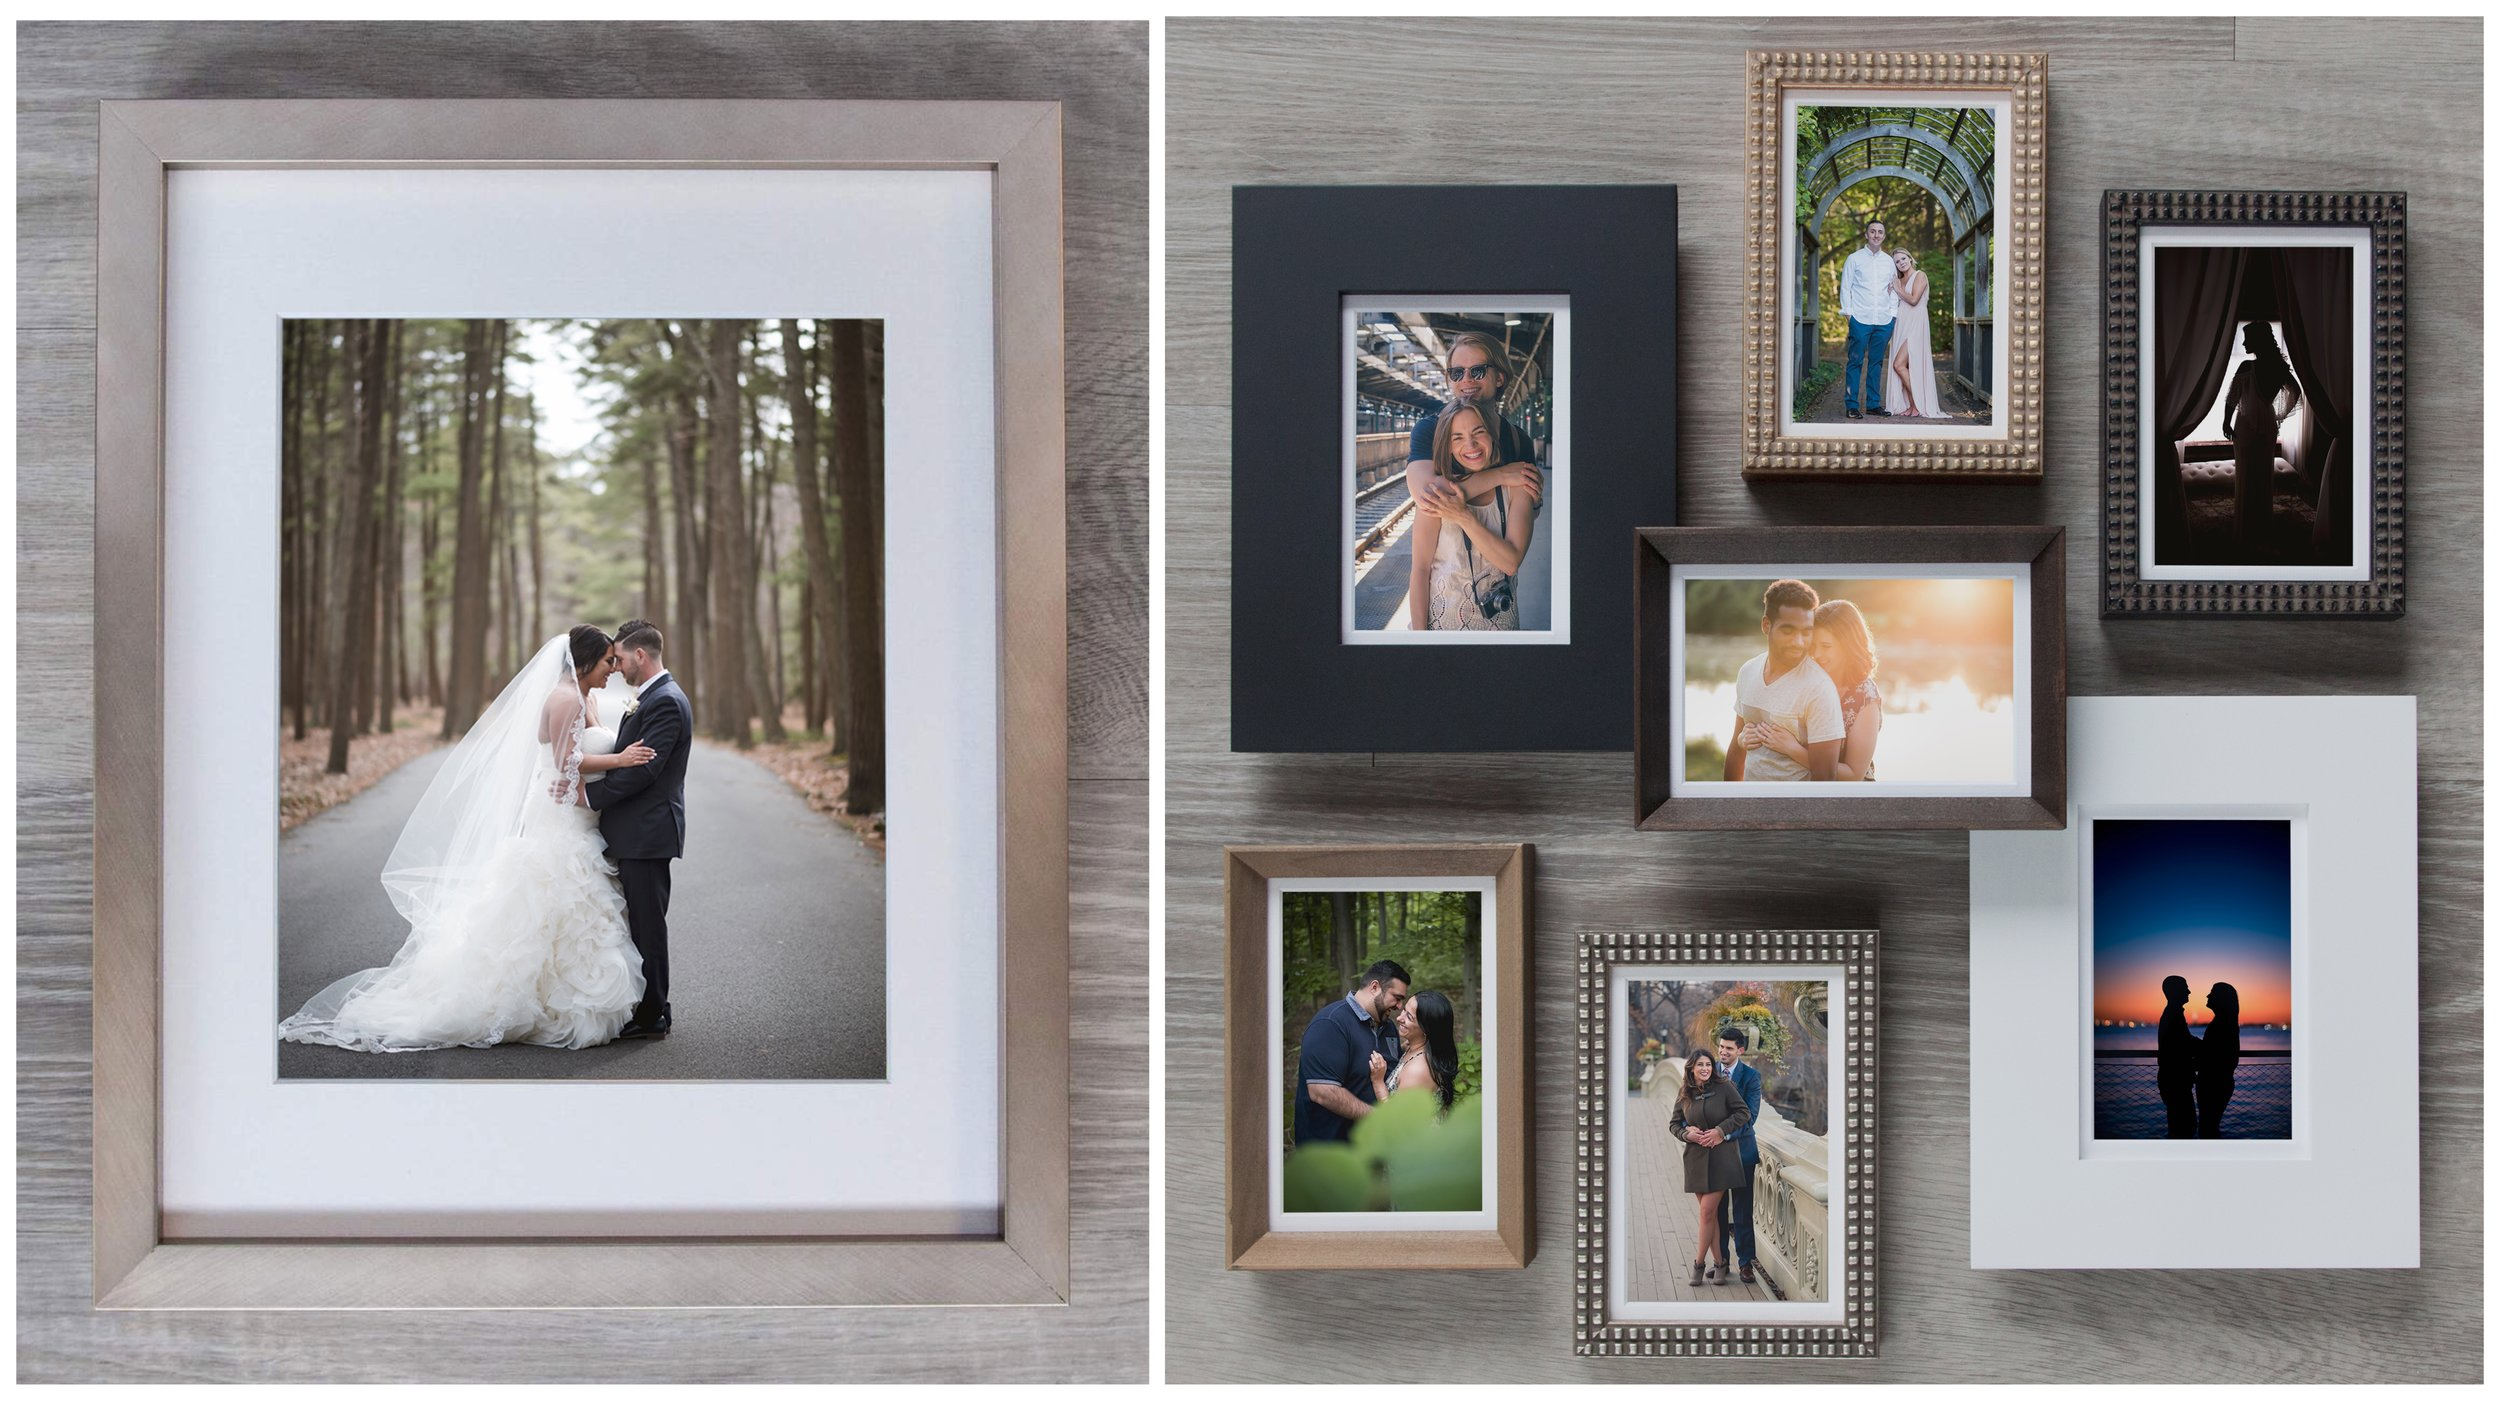 8 beautiful frames to choose from to match any style